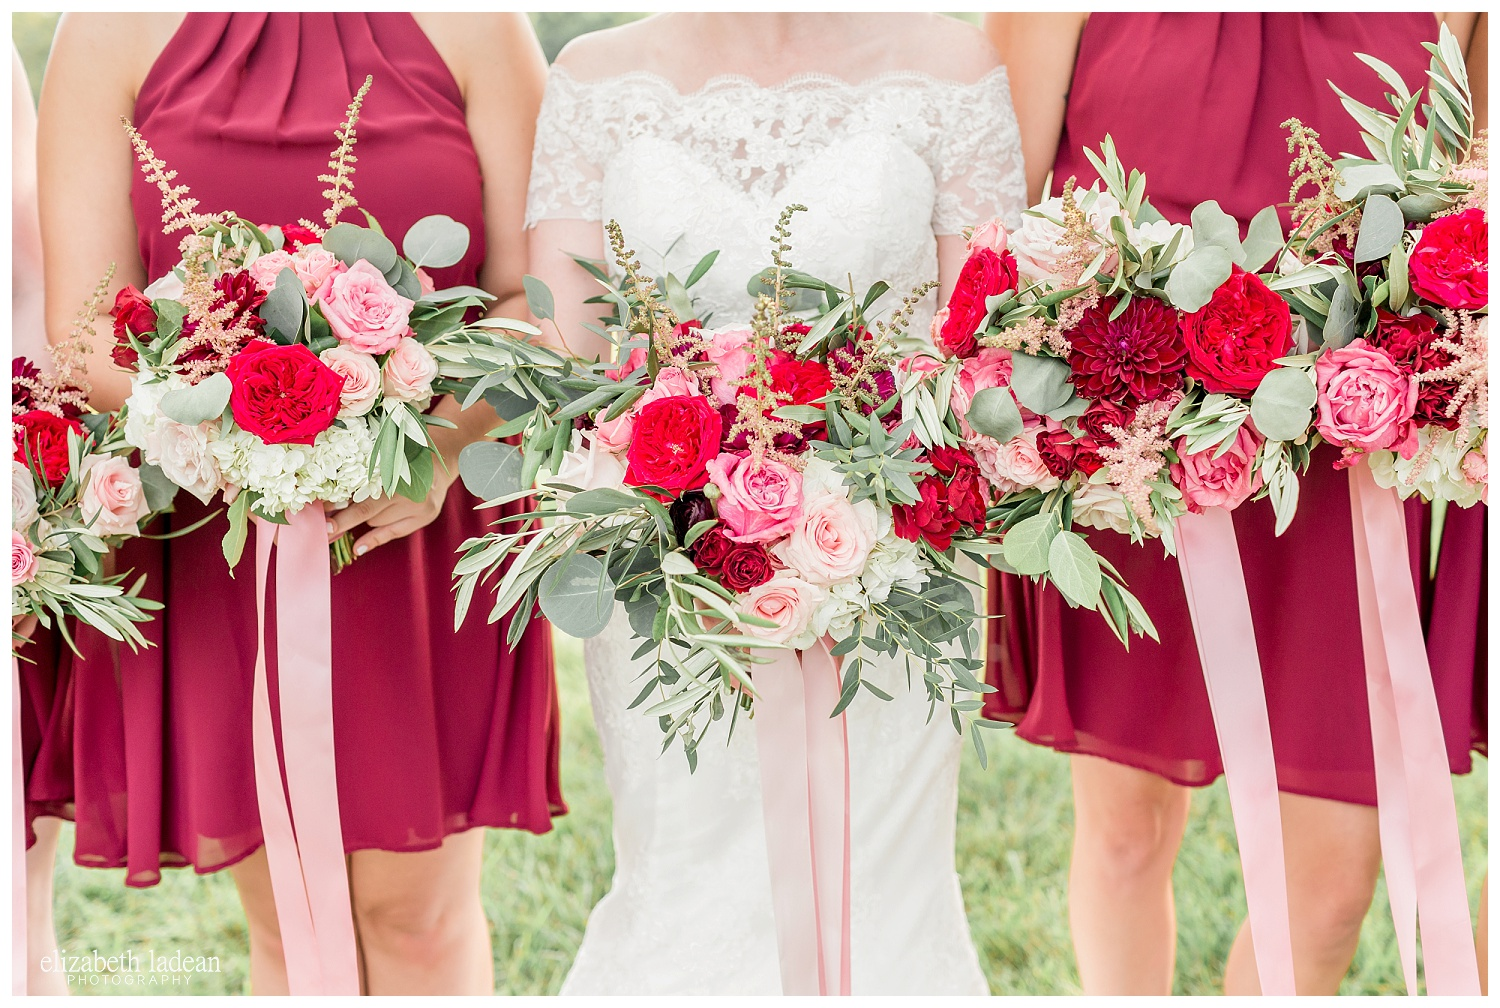 Burgundy-and-Gold-Wedding-Kansas-City-The-Legacy-at-Green-Hills-M+T0902-Elizabeth-Ladean-Photography-photo-_2278.jpg